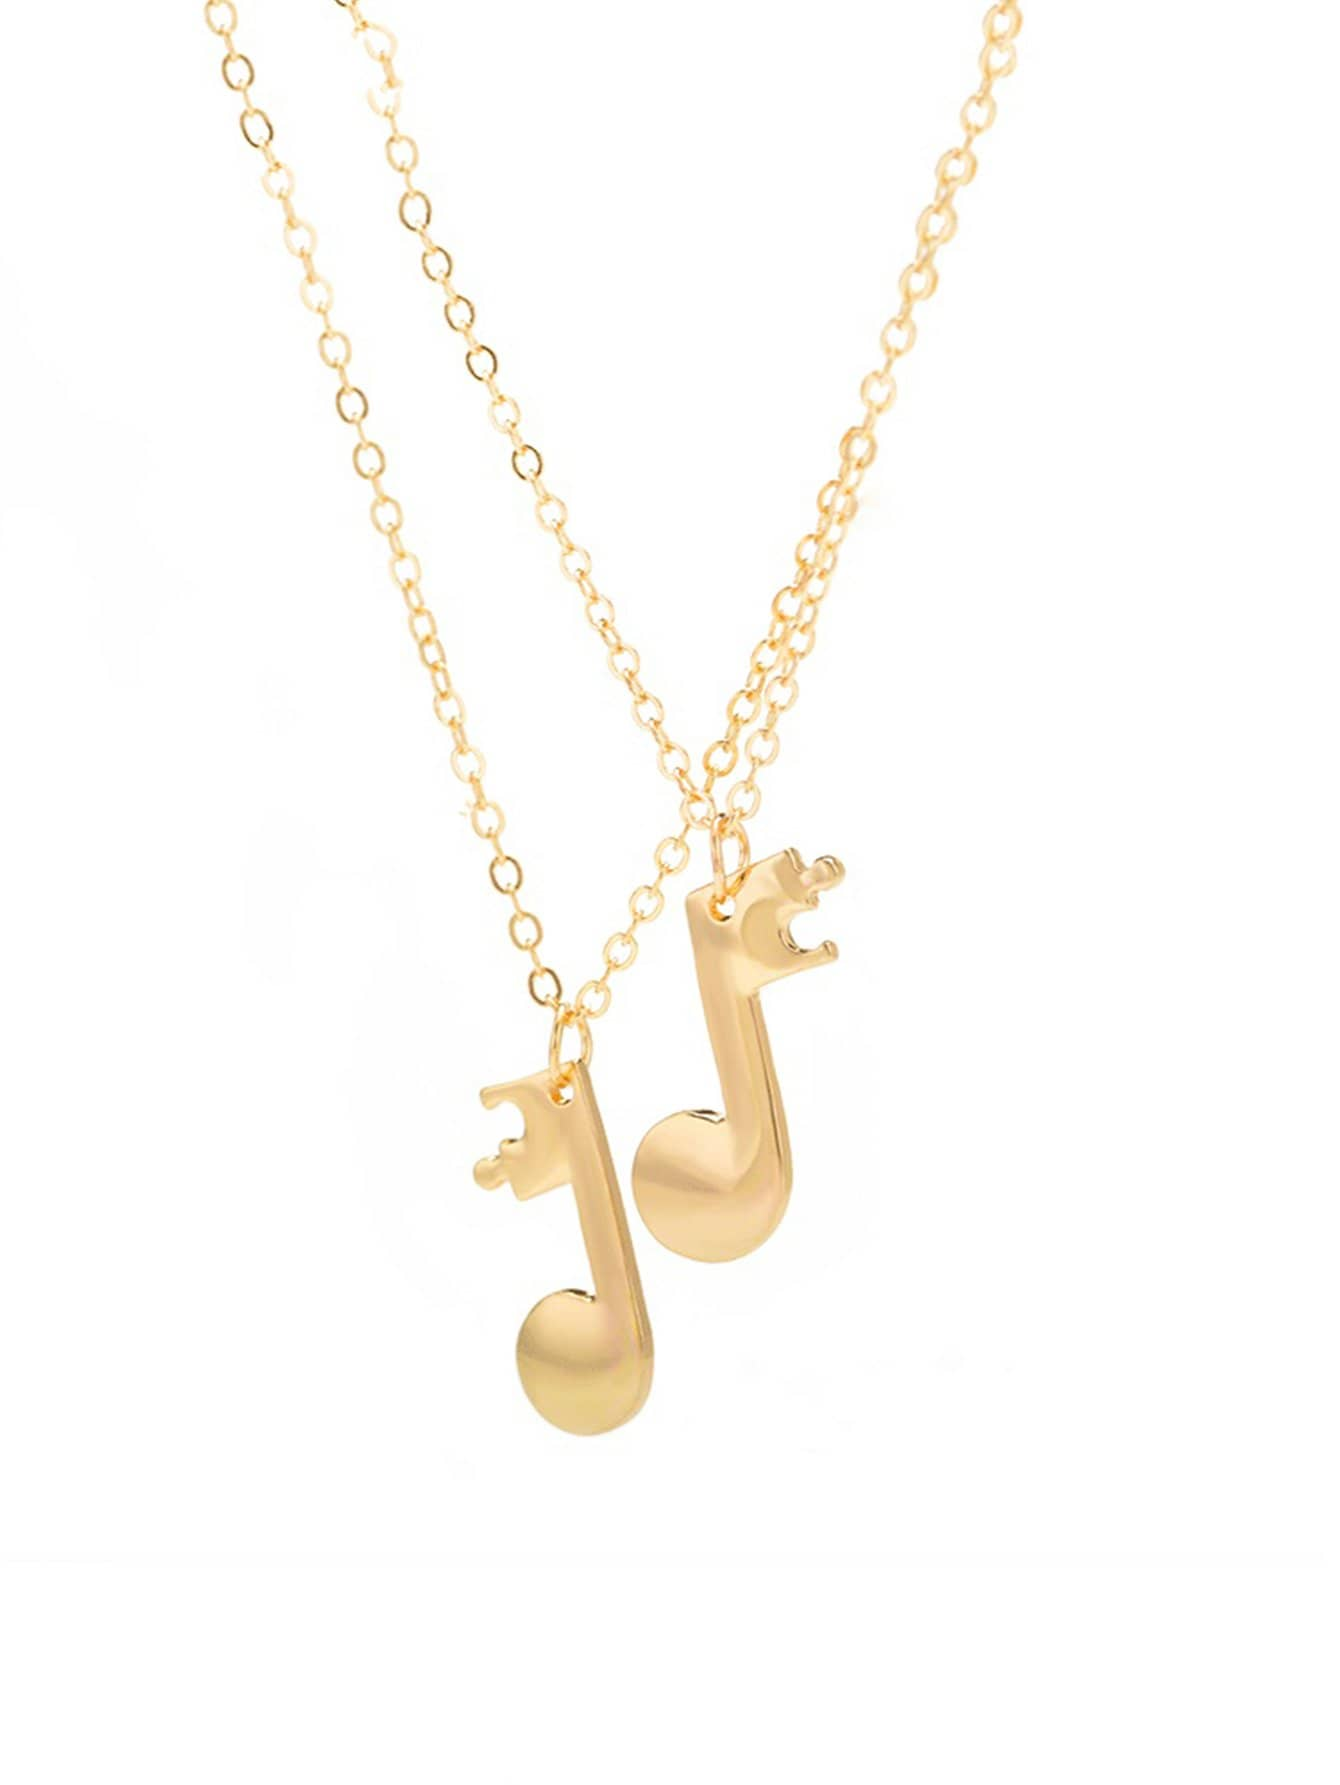 kivick pendant musical charm note product necklace image products